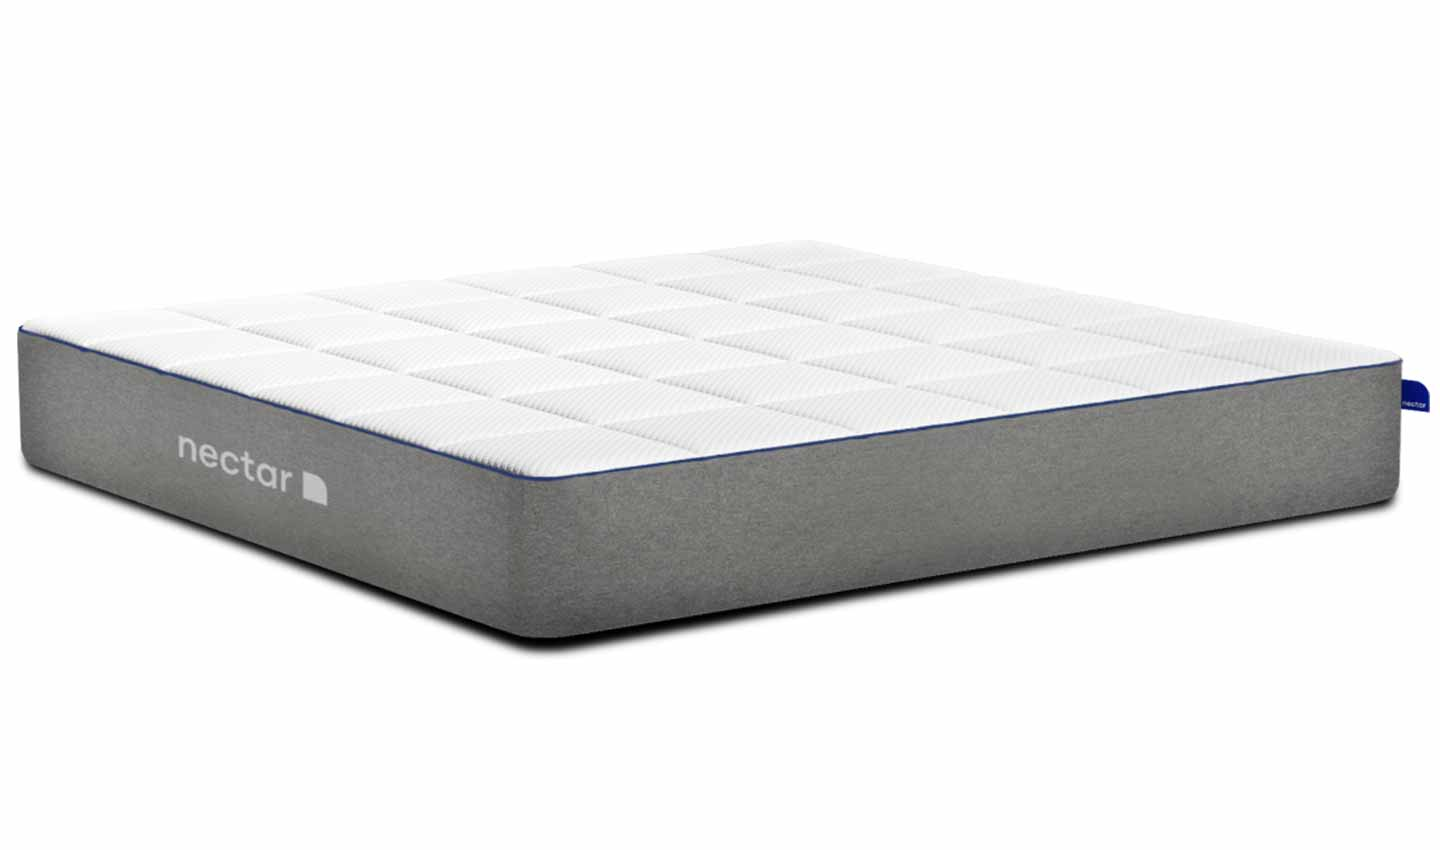 Memory Foam Mattress Too Firm Nectar Mattress Reviews 2019 A Must Read Before You Buy This